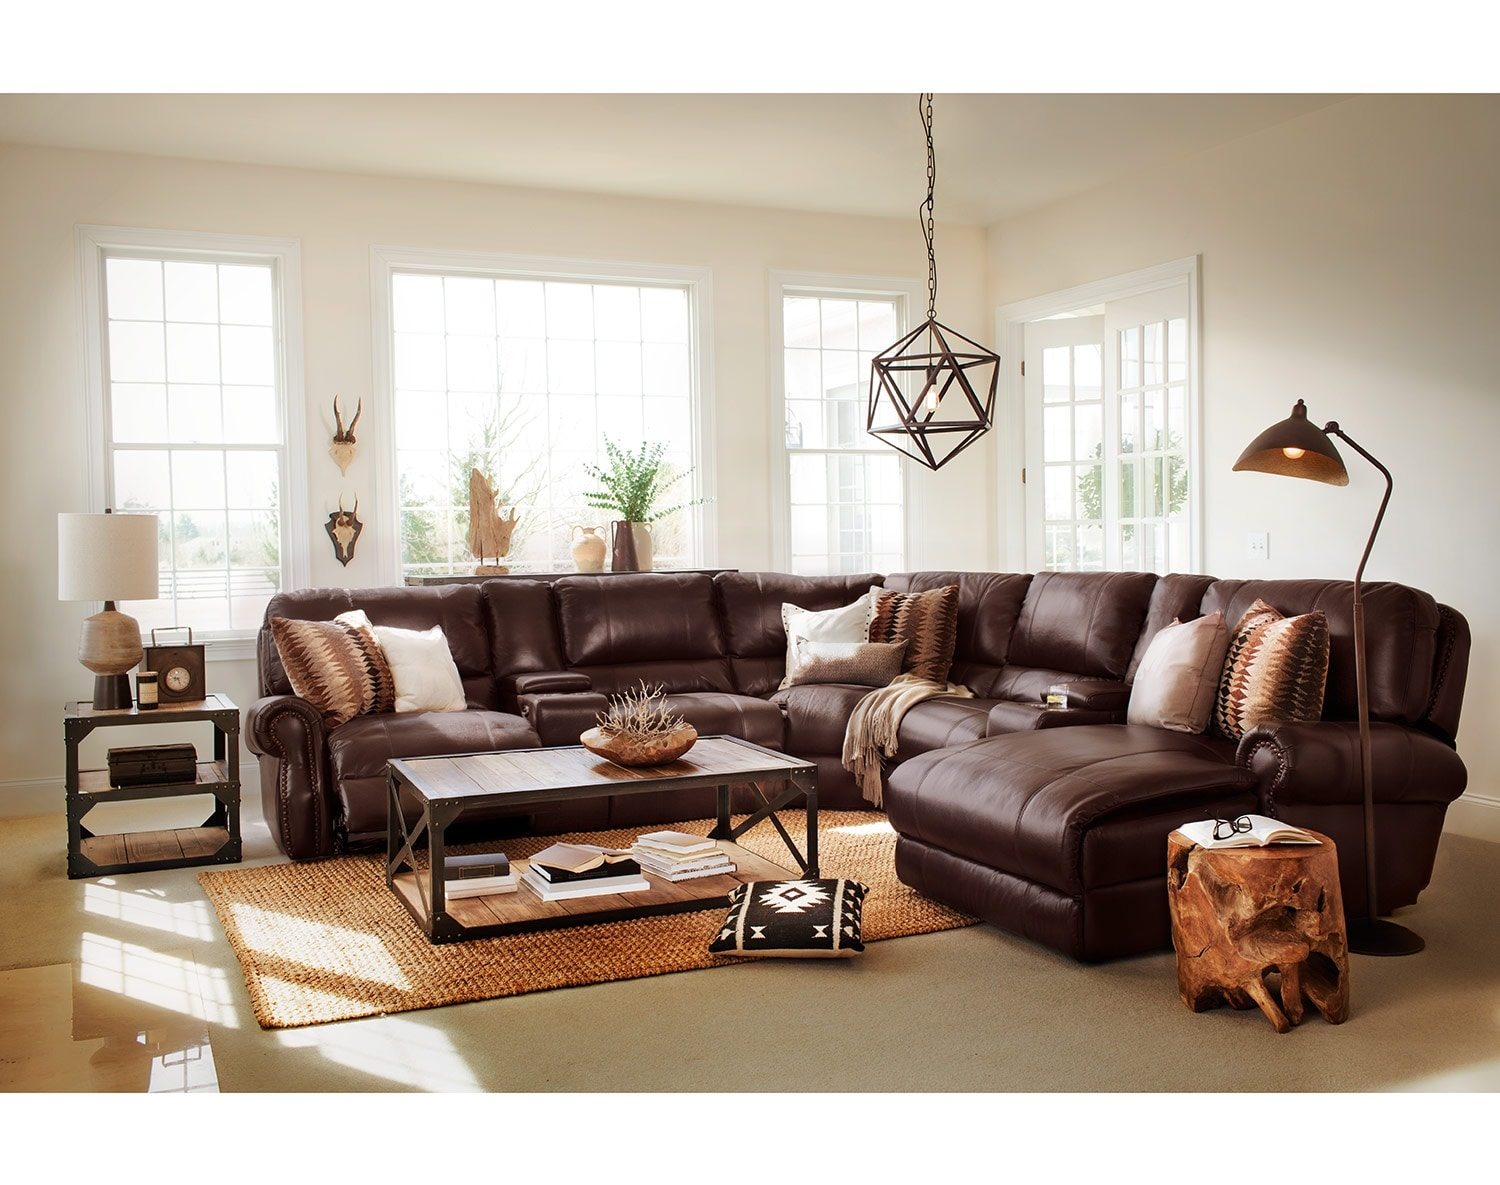 Living Room Pictures Of Living Room Furniture living room collections value city furniture the princeton collection